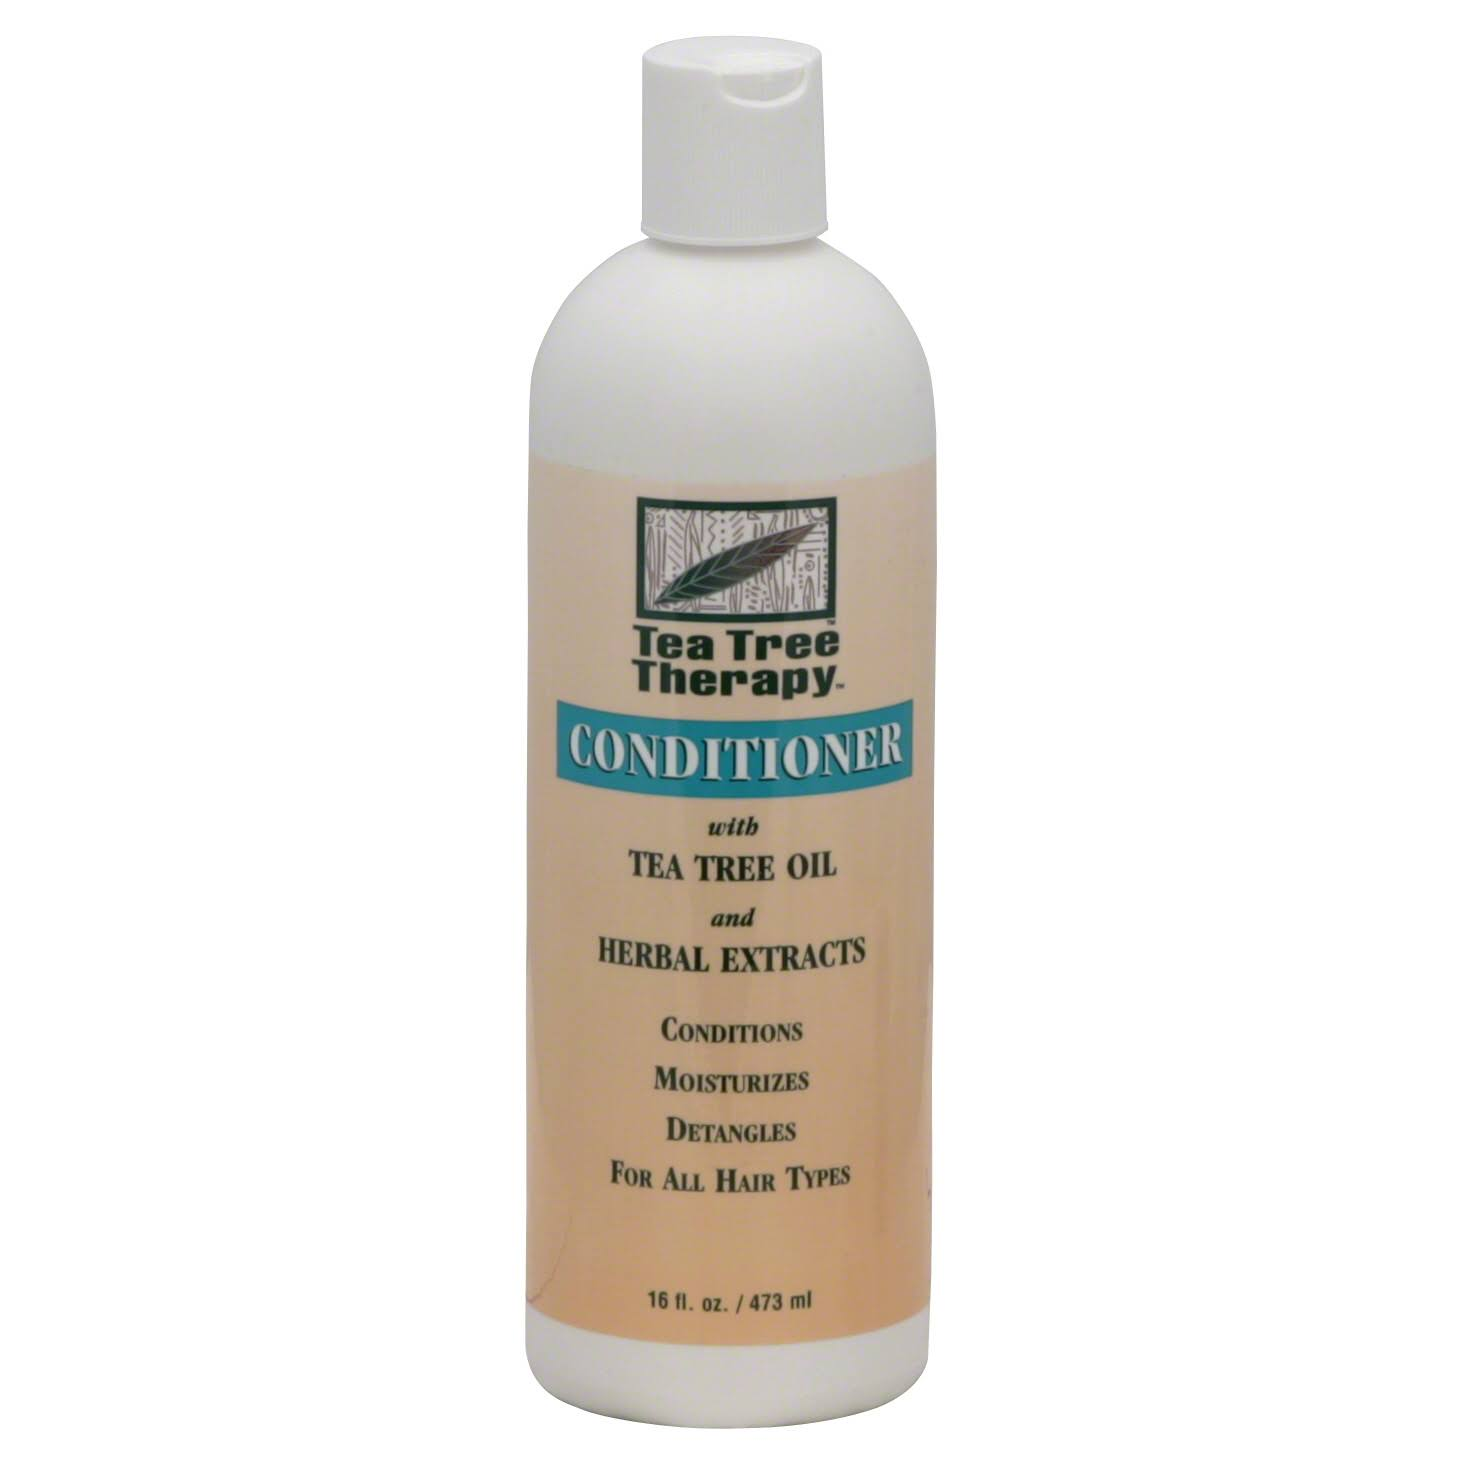 Tea Tree Therapy Conditioner - 16oz